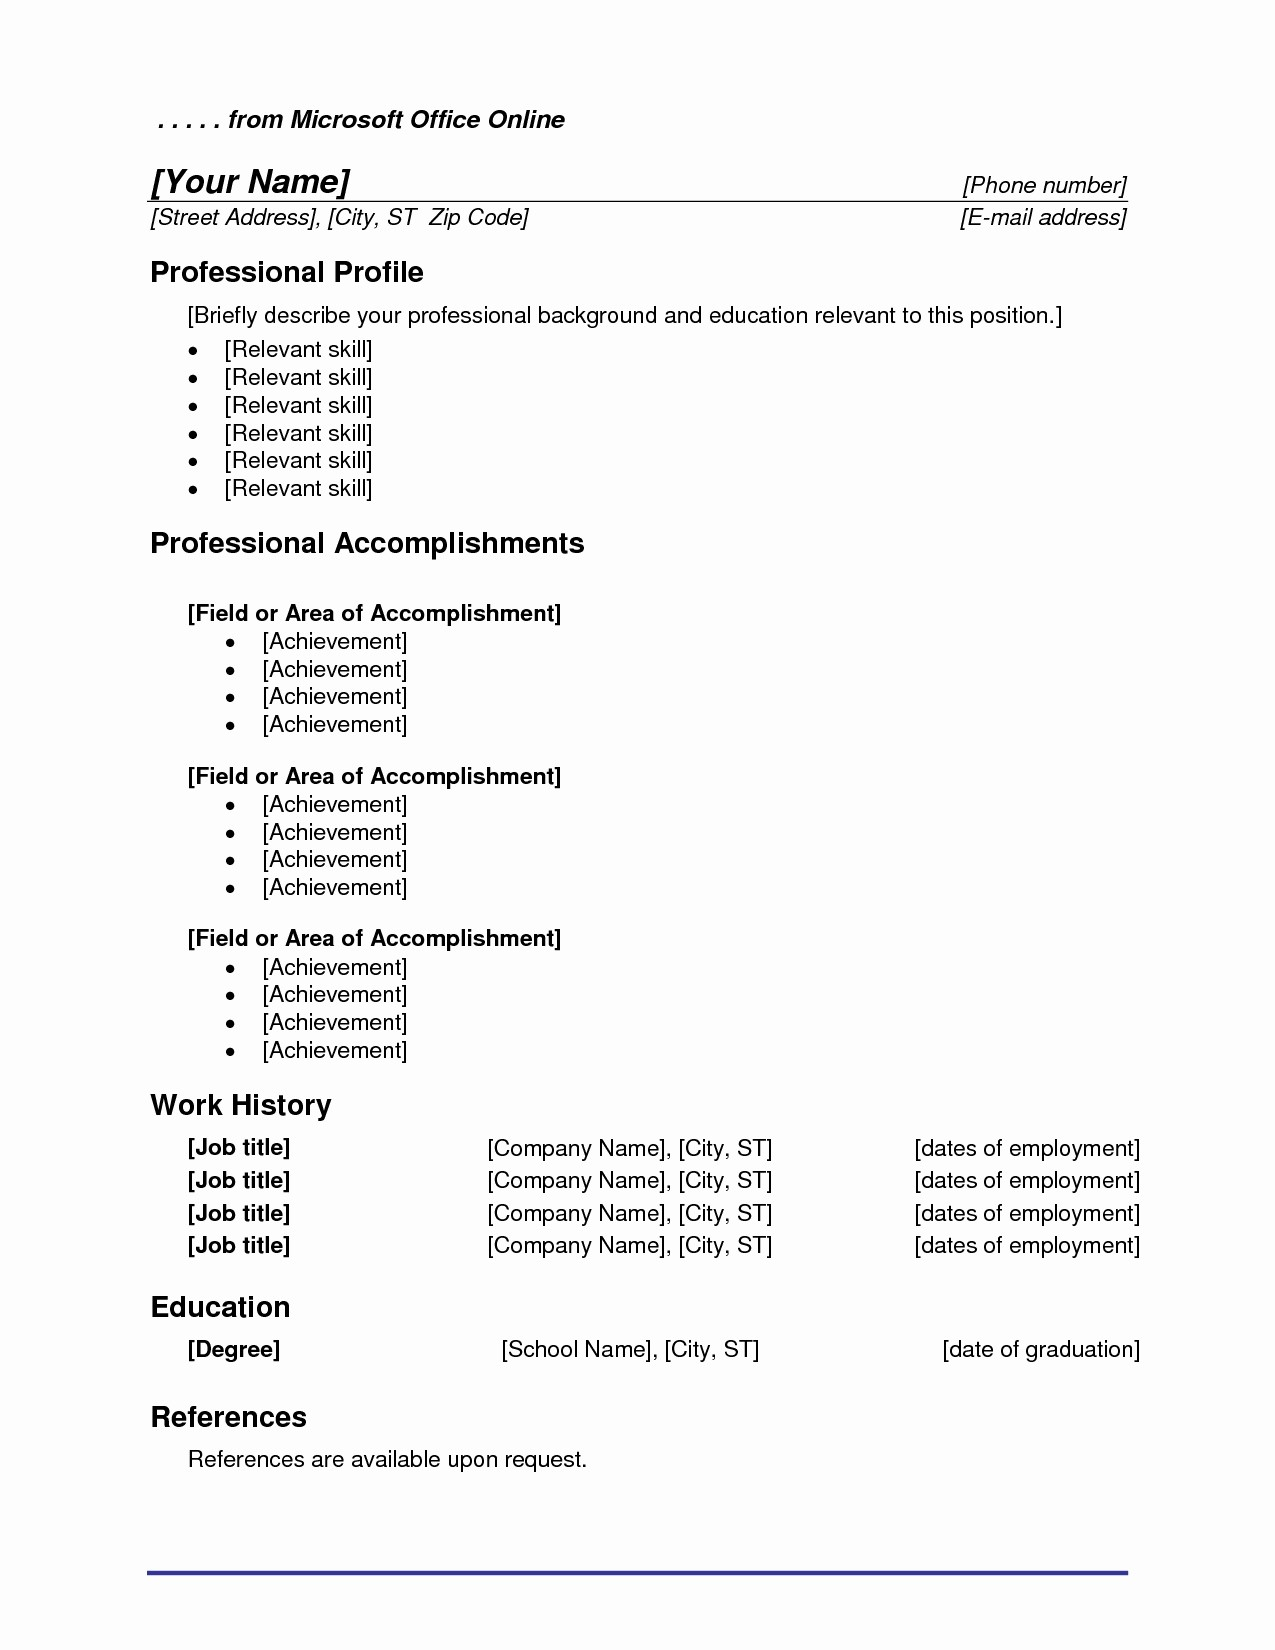 Microsoft Word 2010 Resume Templates Unique Microsoft Fice Resume Templates Beepmunk